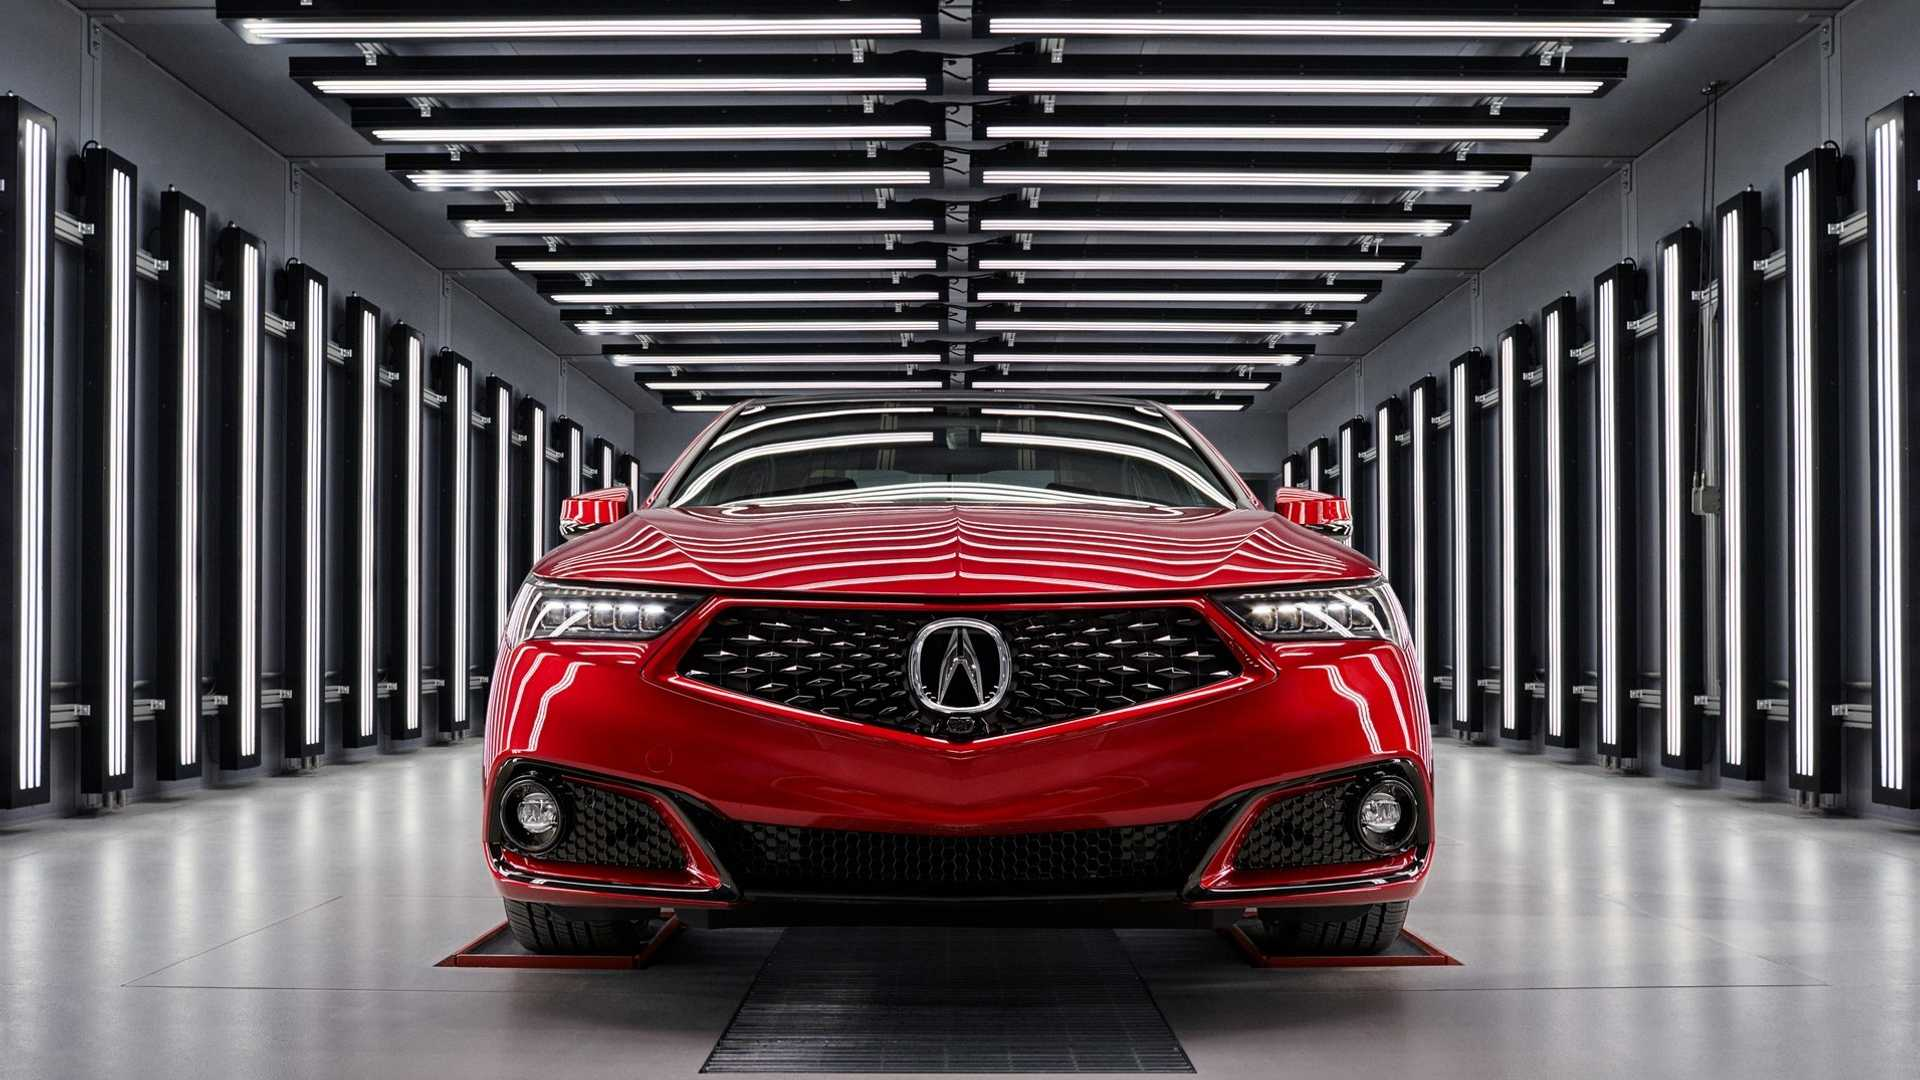 2020-acura-tlx-pmc-edition.jpg